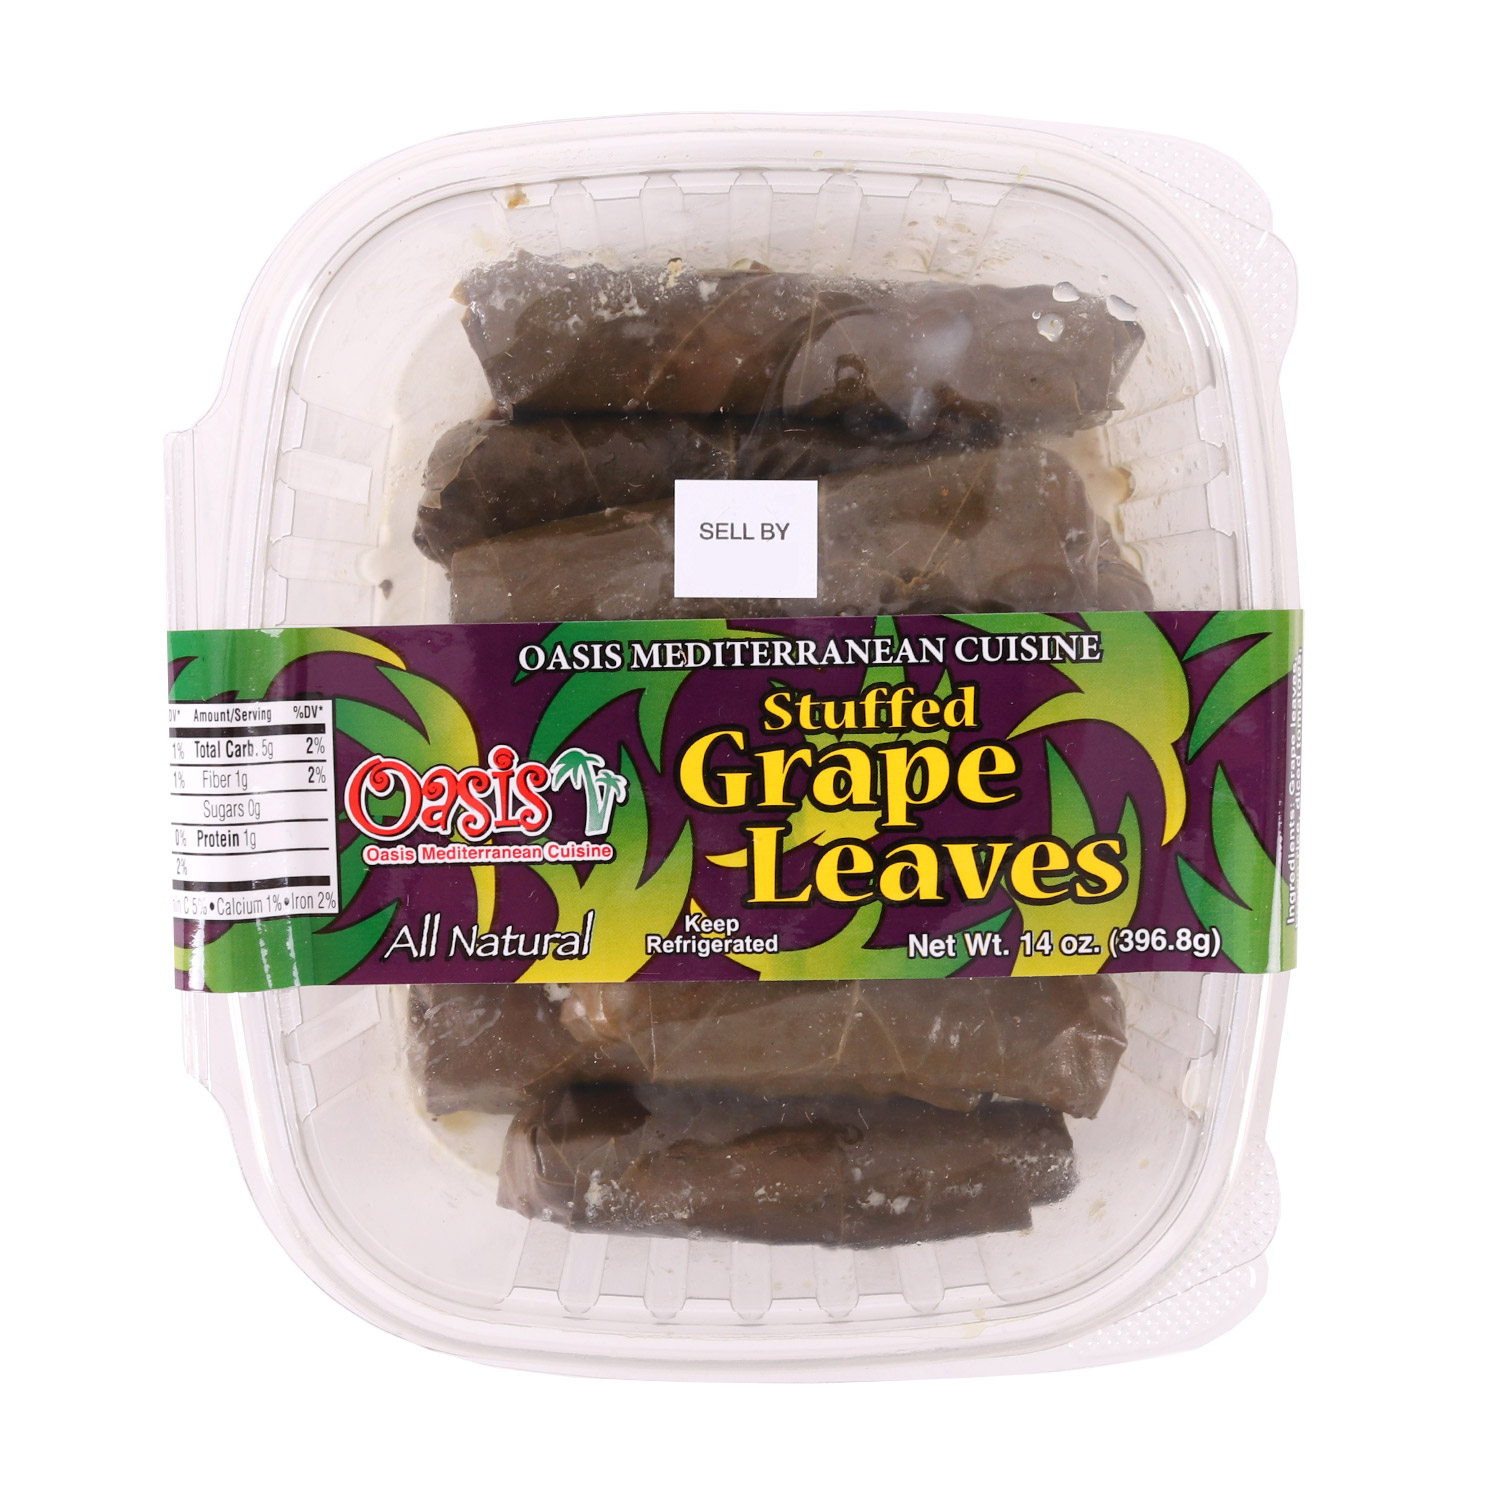 Mediterranean Cuisine, Stuffed Grape Leaves